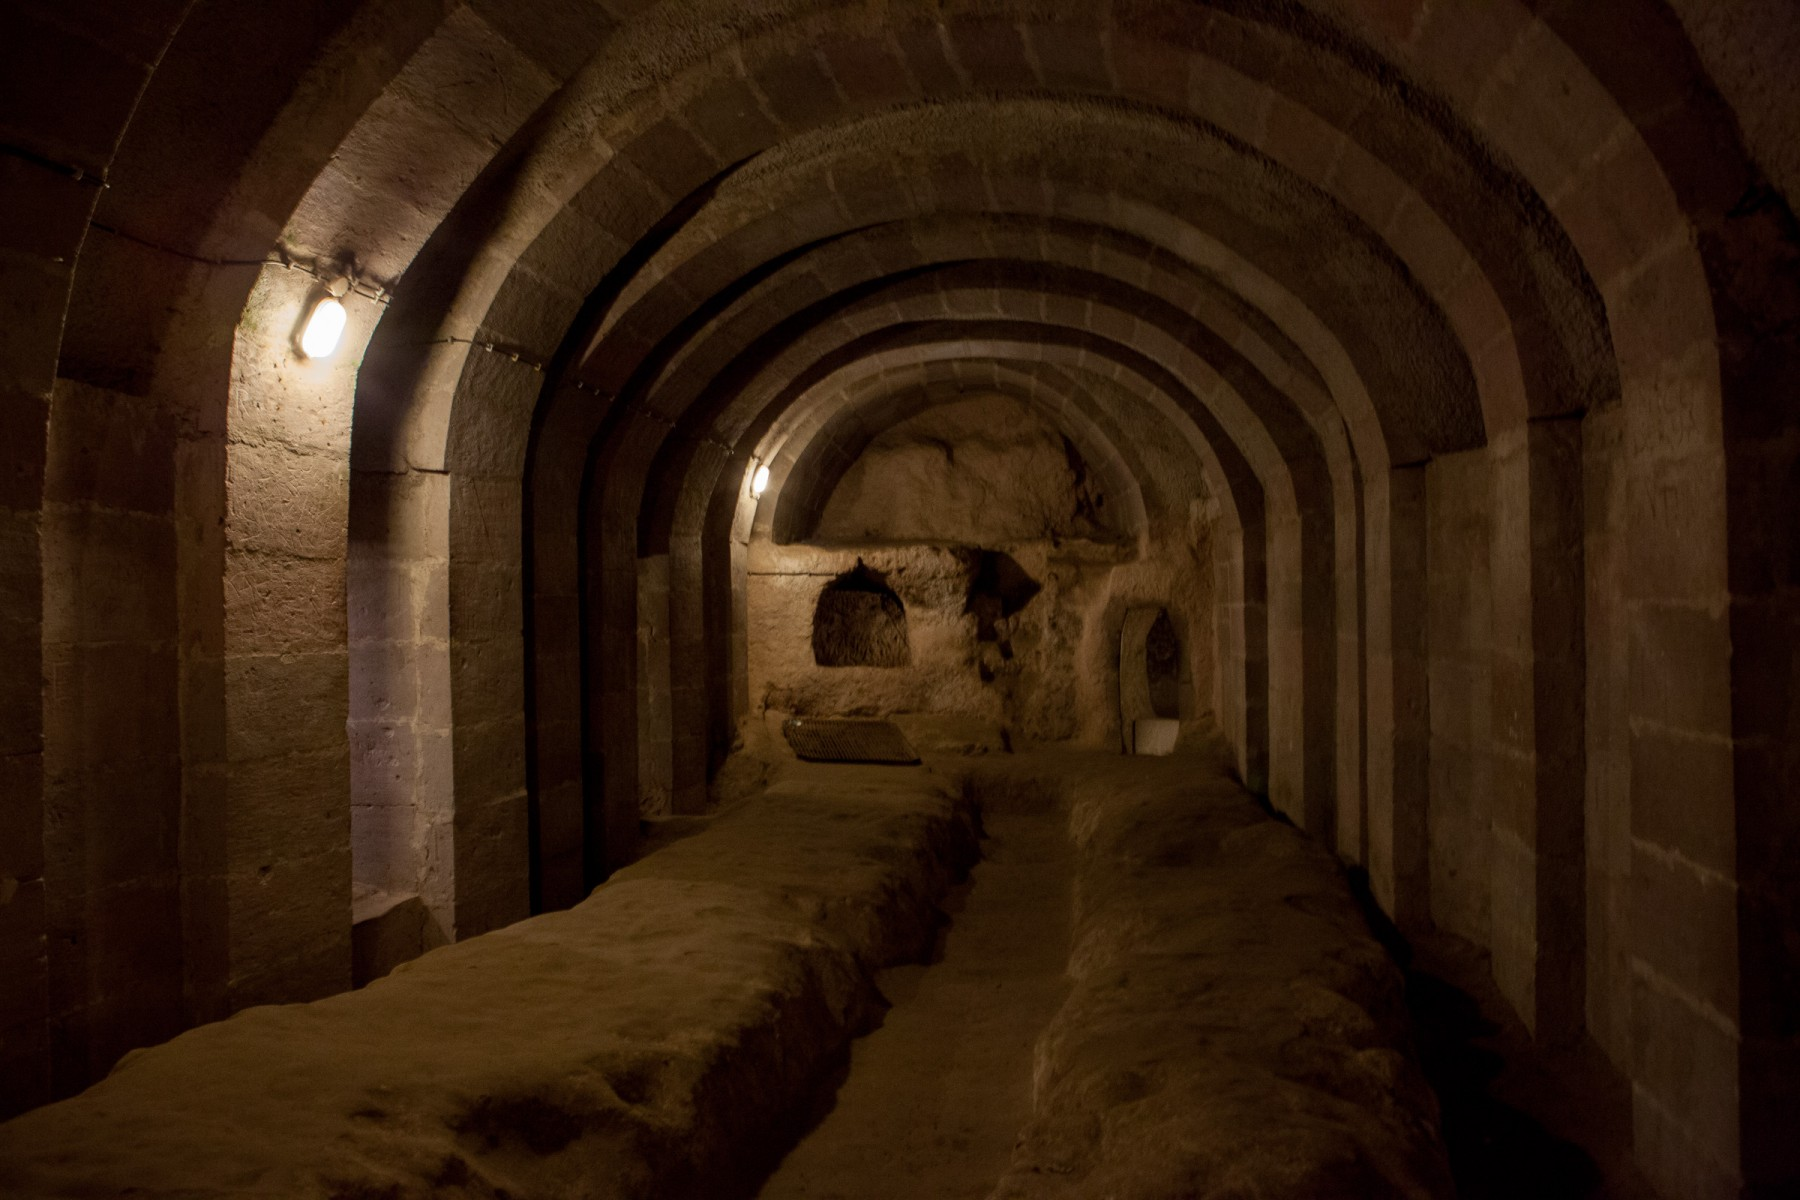 A vaulted cavern in the underground city of  Derinkuyu in Cappadocia, central Turkey. The tunnels were expanded in the Byzantine era, when it was heavily used as protection from Muslim Arabs during the Arab–Byzantine wars (780-1180).